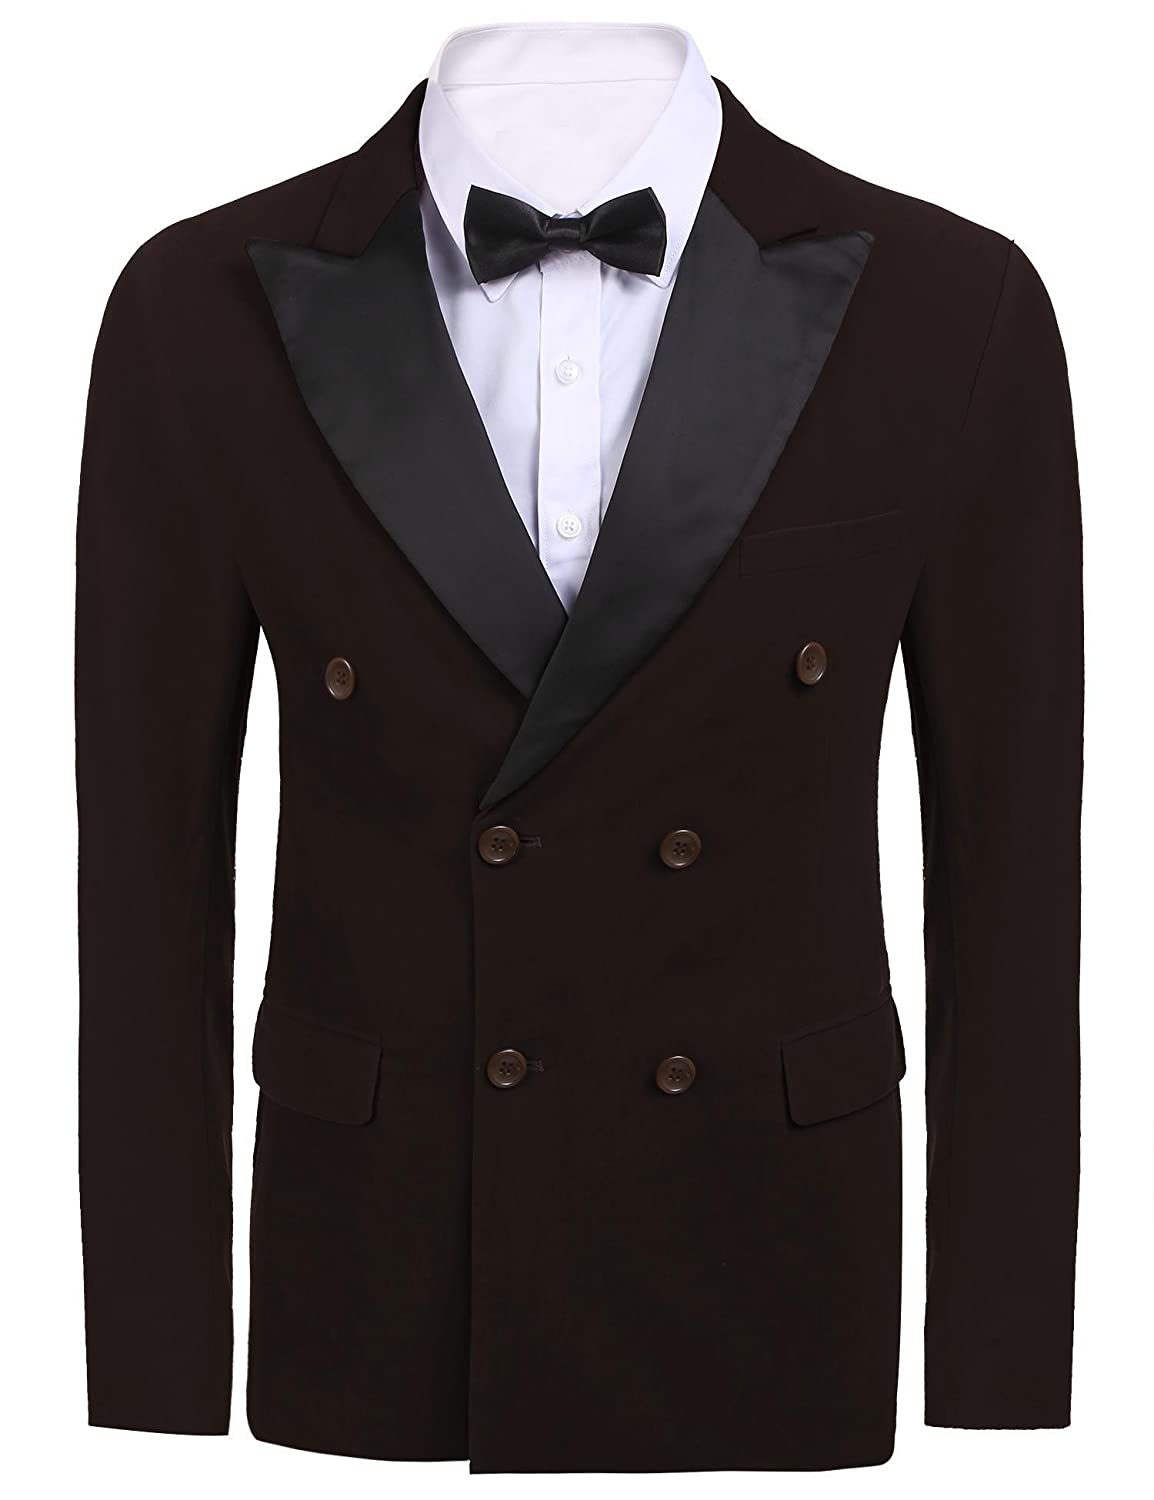 COOFANDY Men's Casual Dress Suit Slim Fit Blazer Coats Jackets